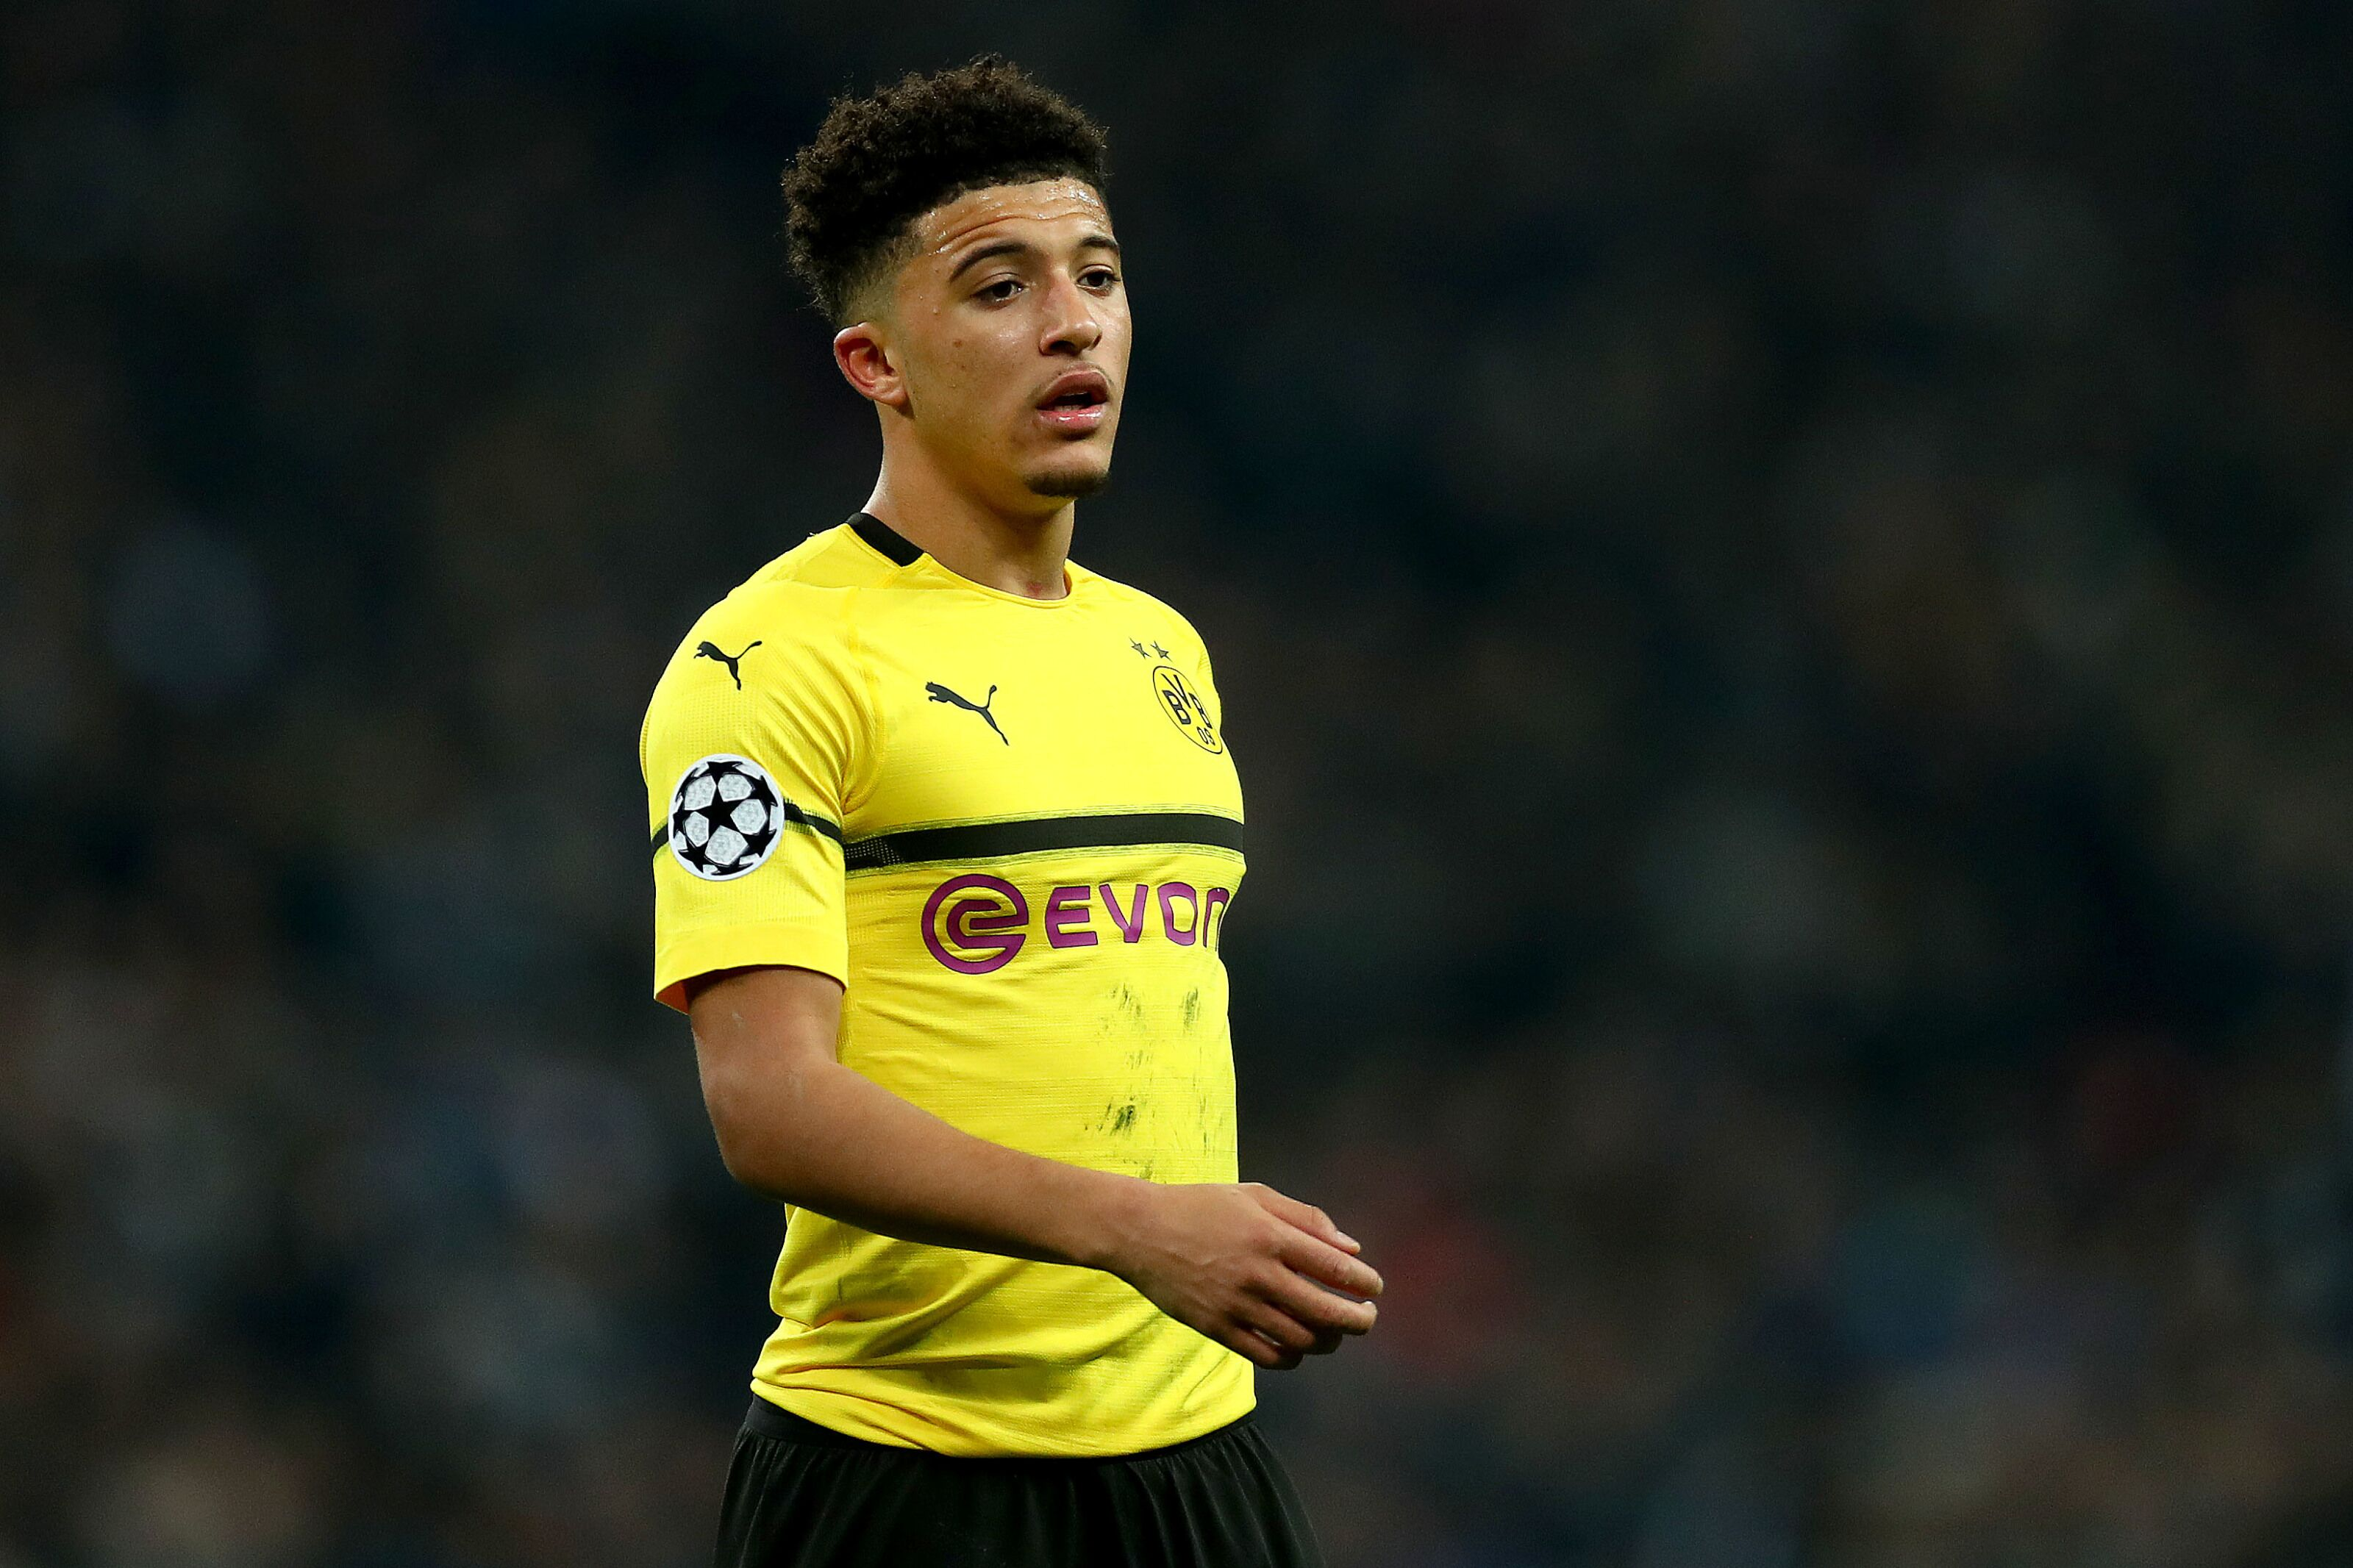 3 reasons why Manchester United should NOT sign Jadon Sancho